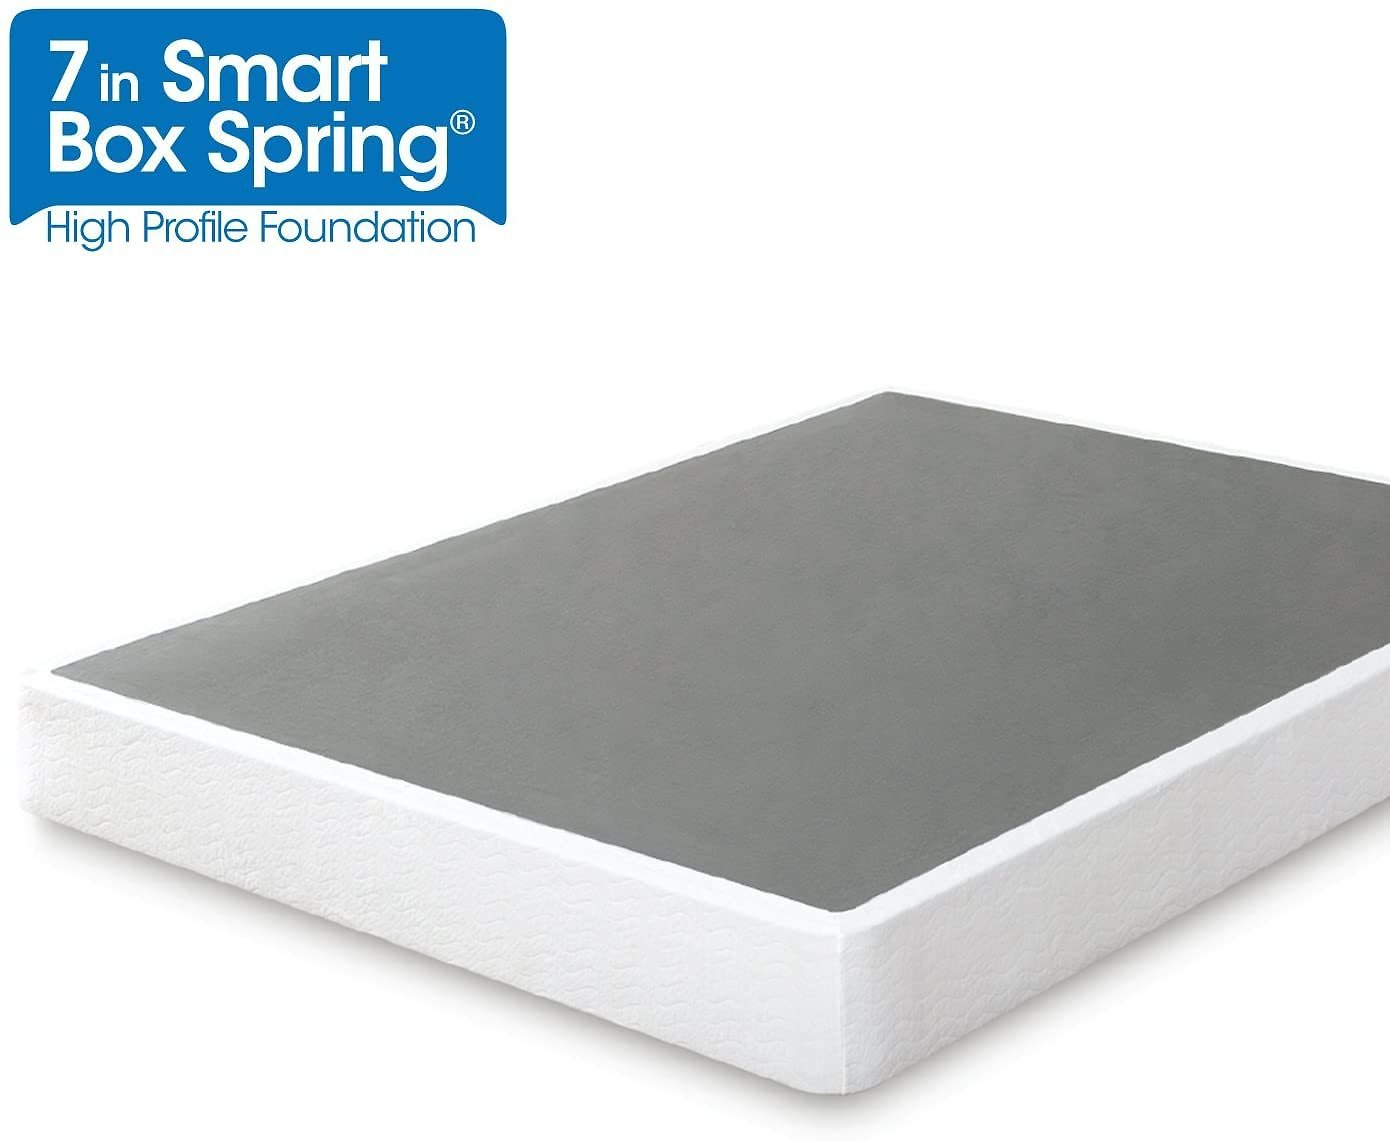 Zinus Armita Smart Box Spring / Mattress Foundation / Built-to-Last Metal Structure / Easy Assembly (MULTIPLE SIZES AVAILABLE)